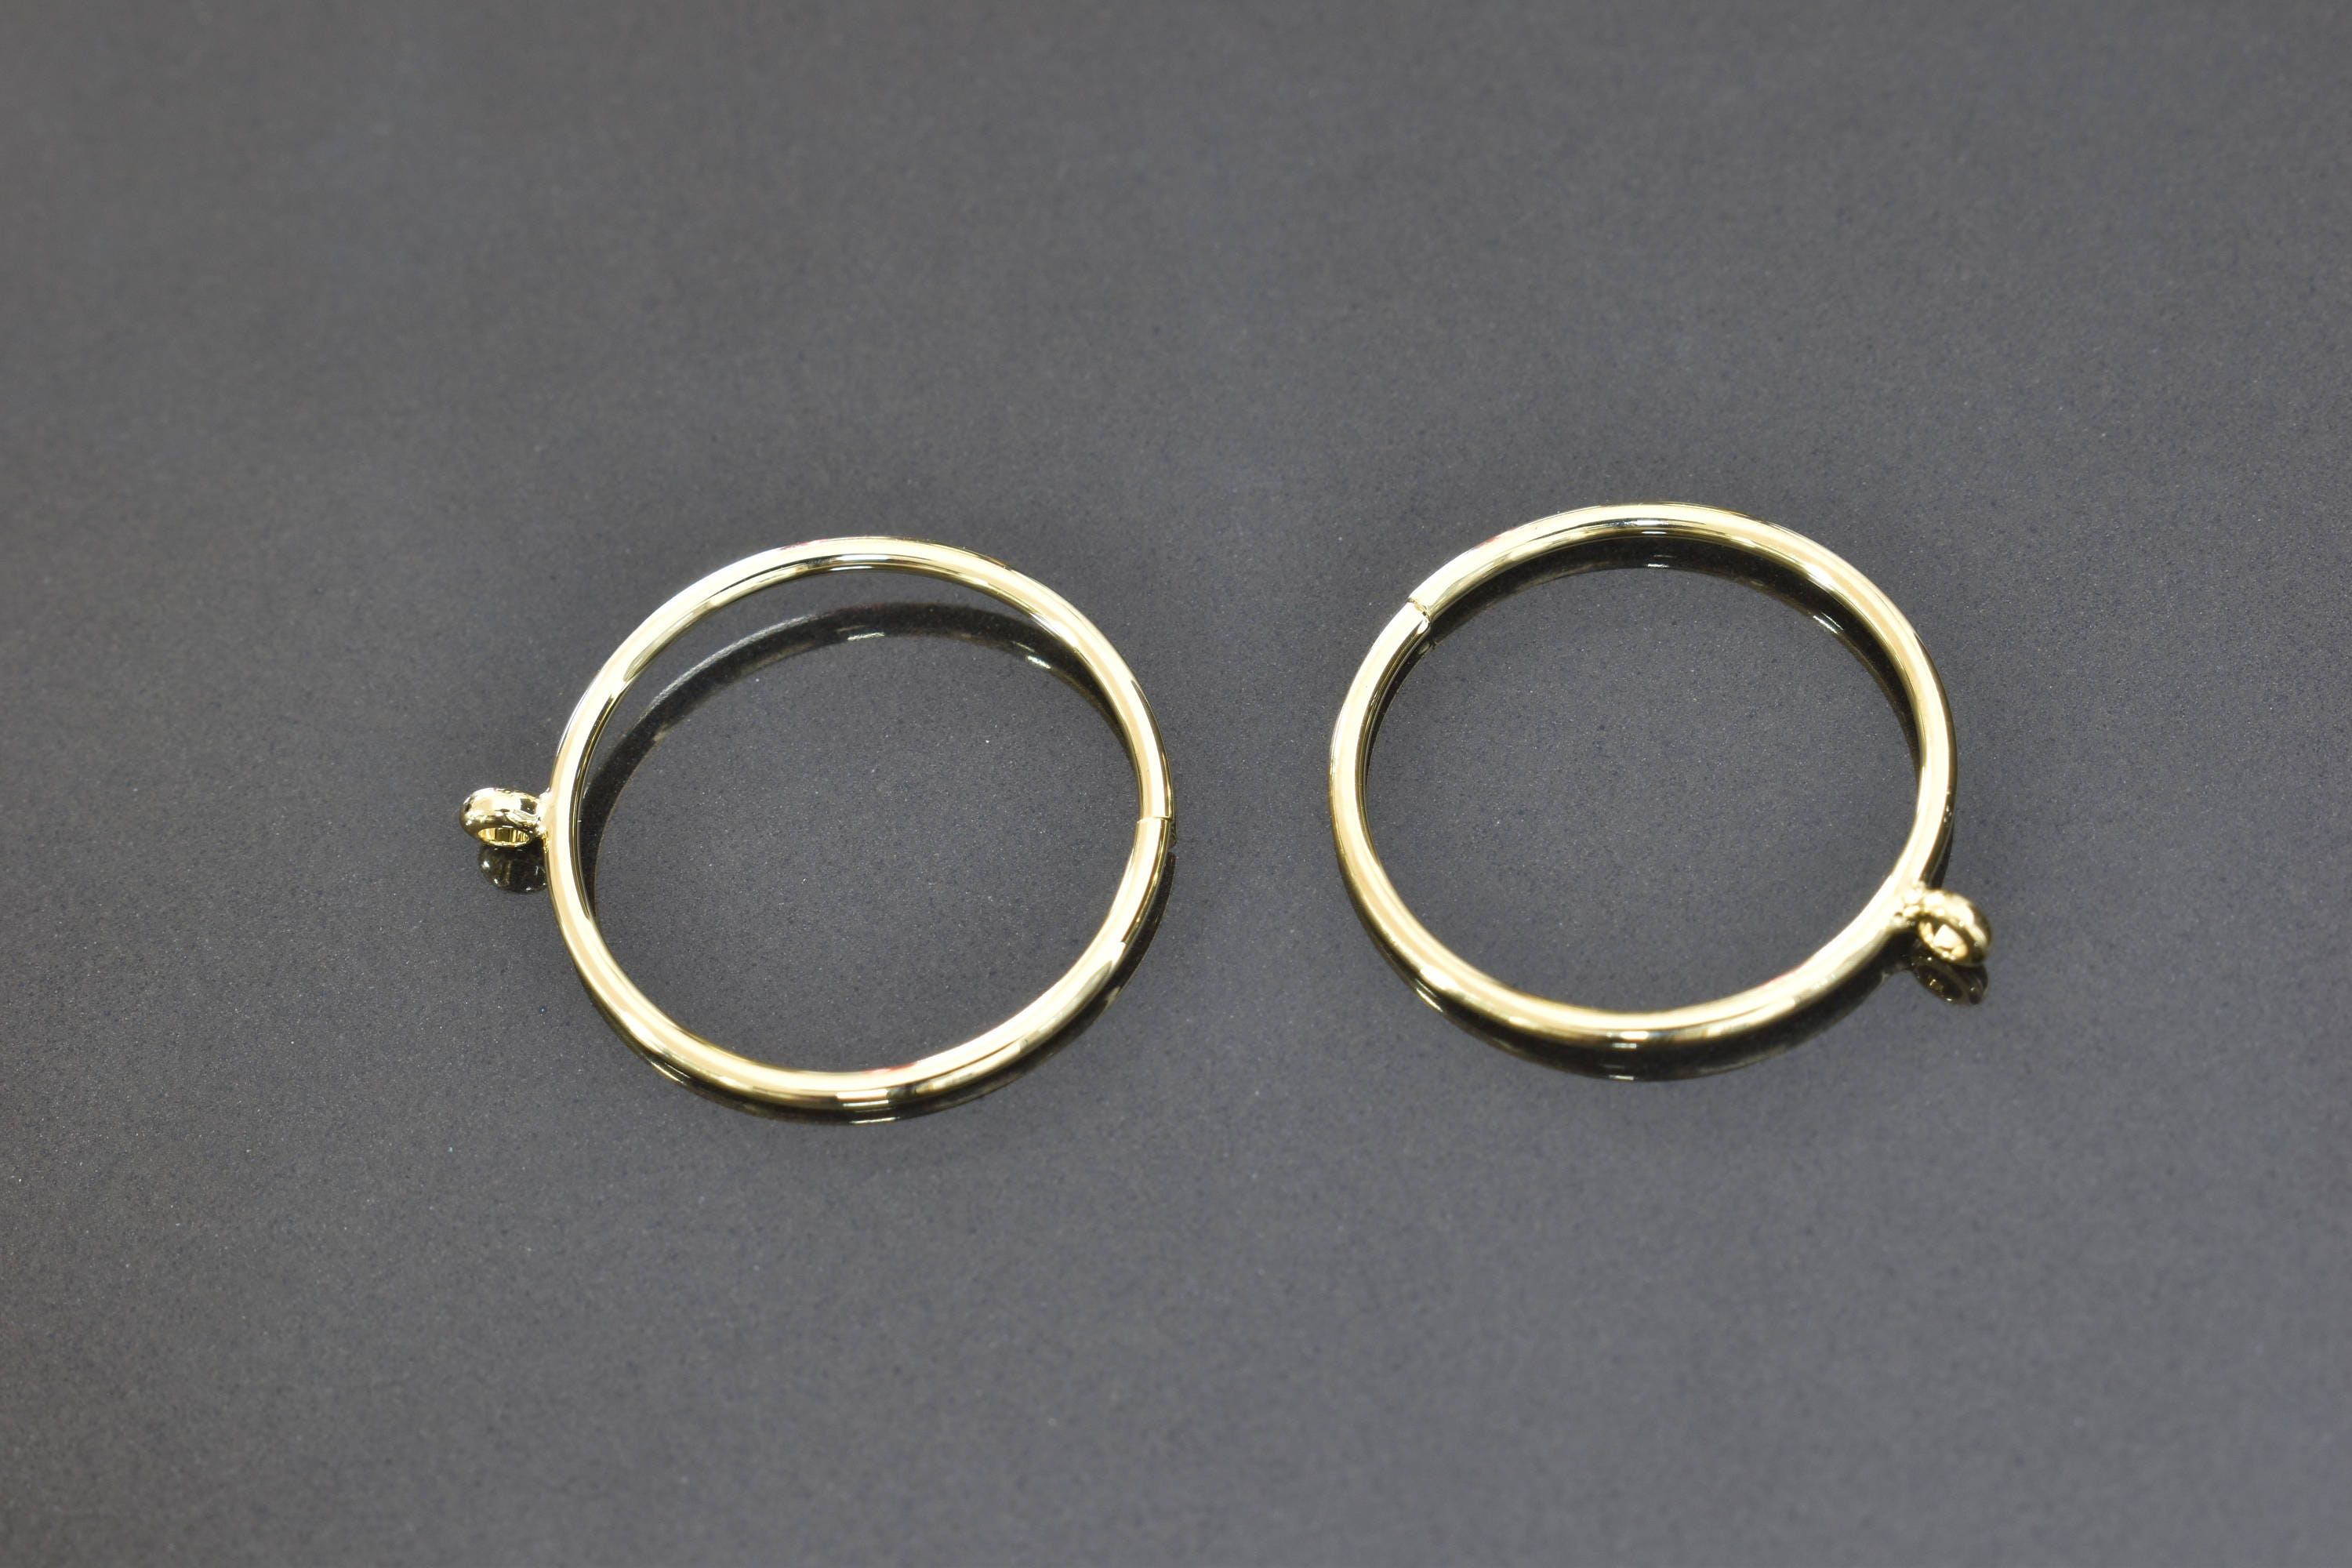 Ring, RA-04G, 5pcs, Adjustable wire ring, 16K shiny gold plated ...